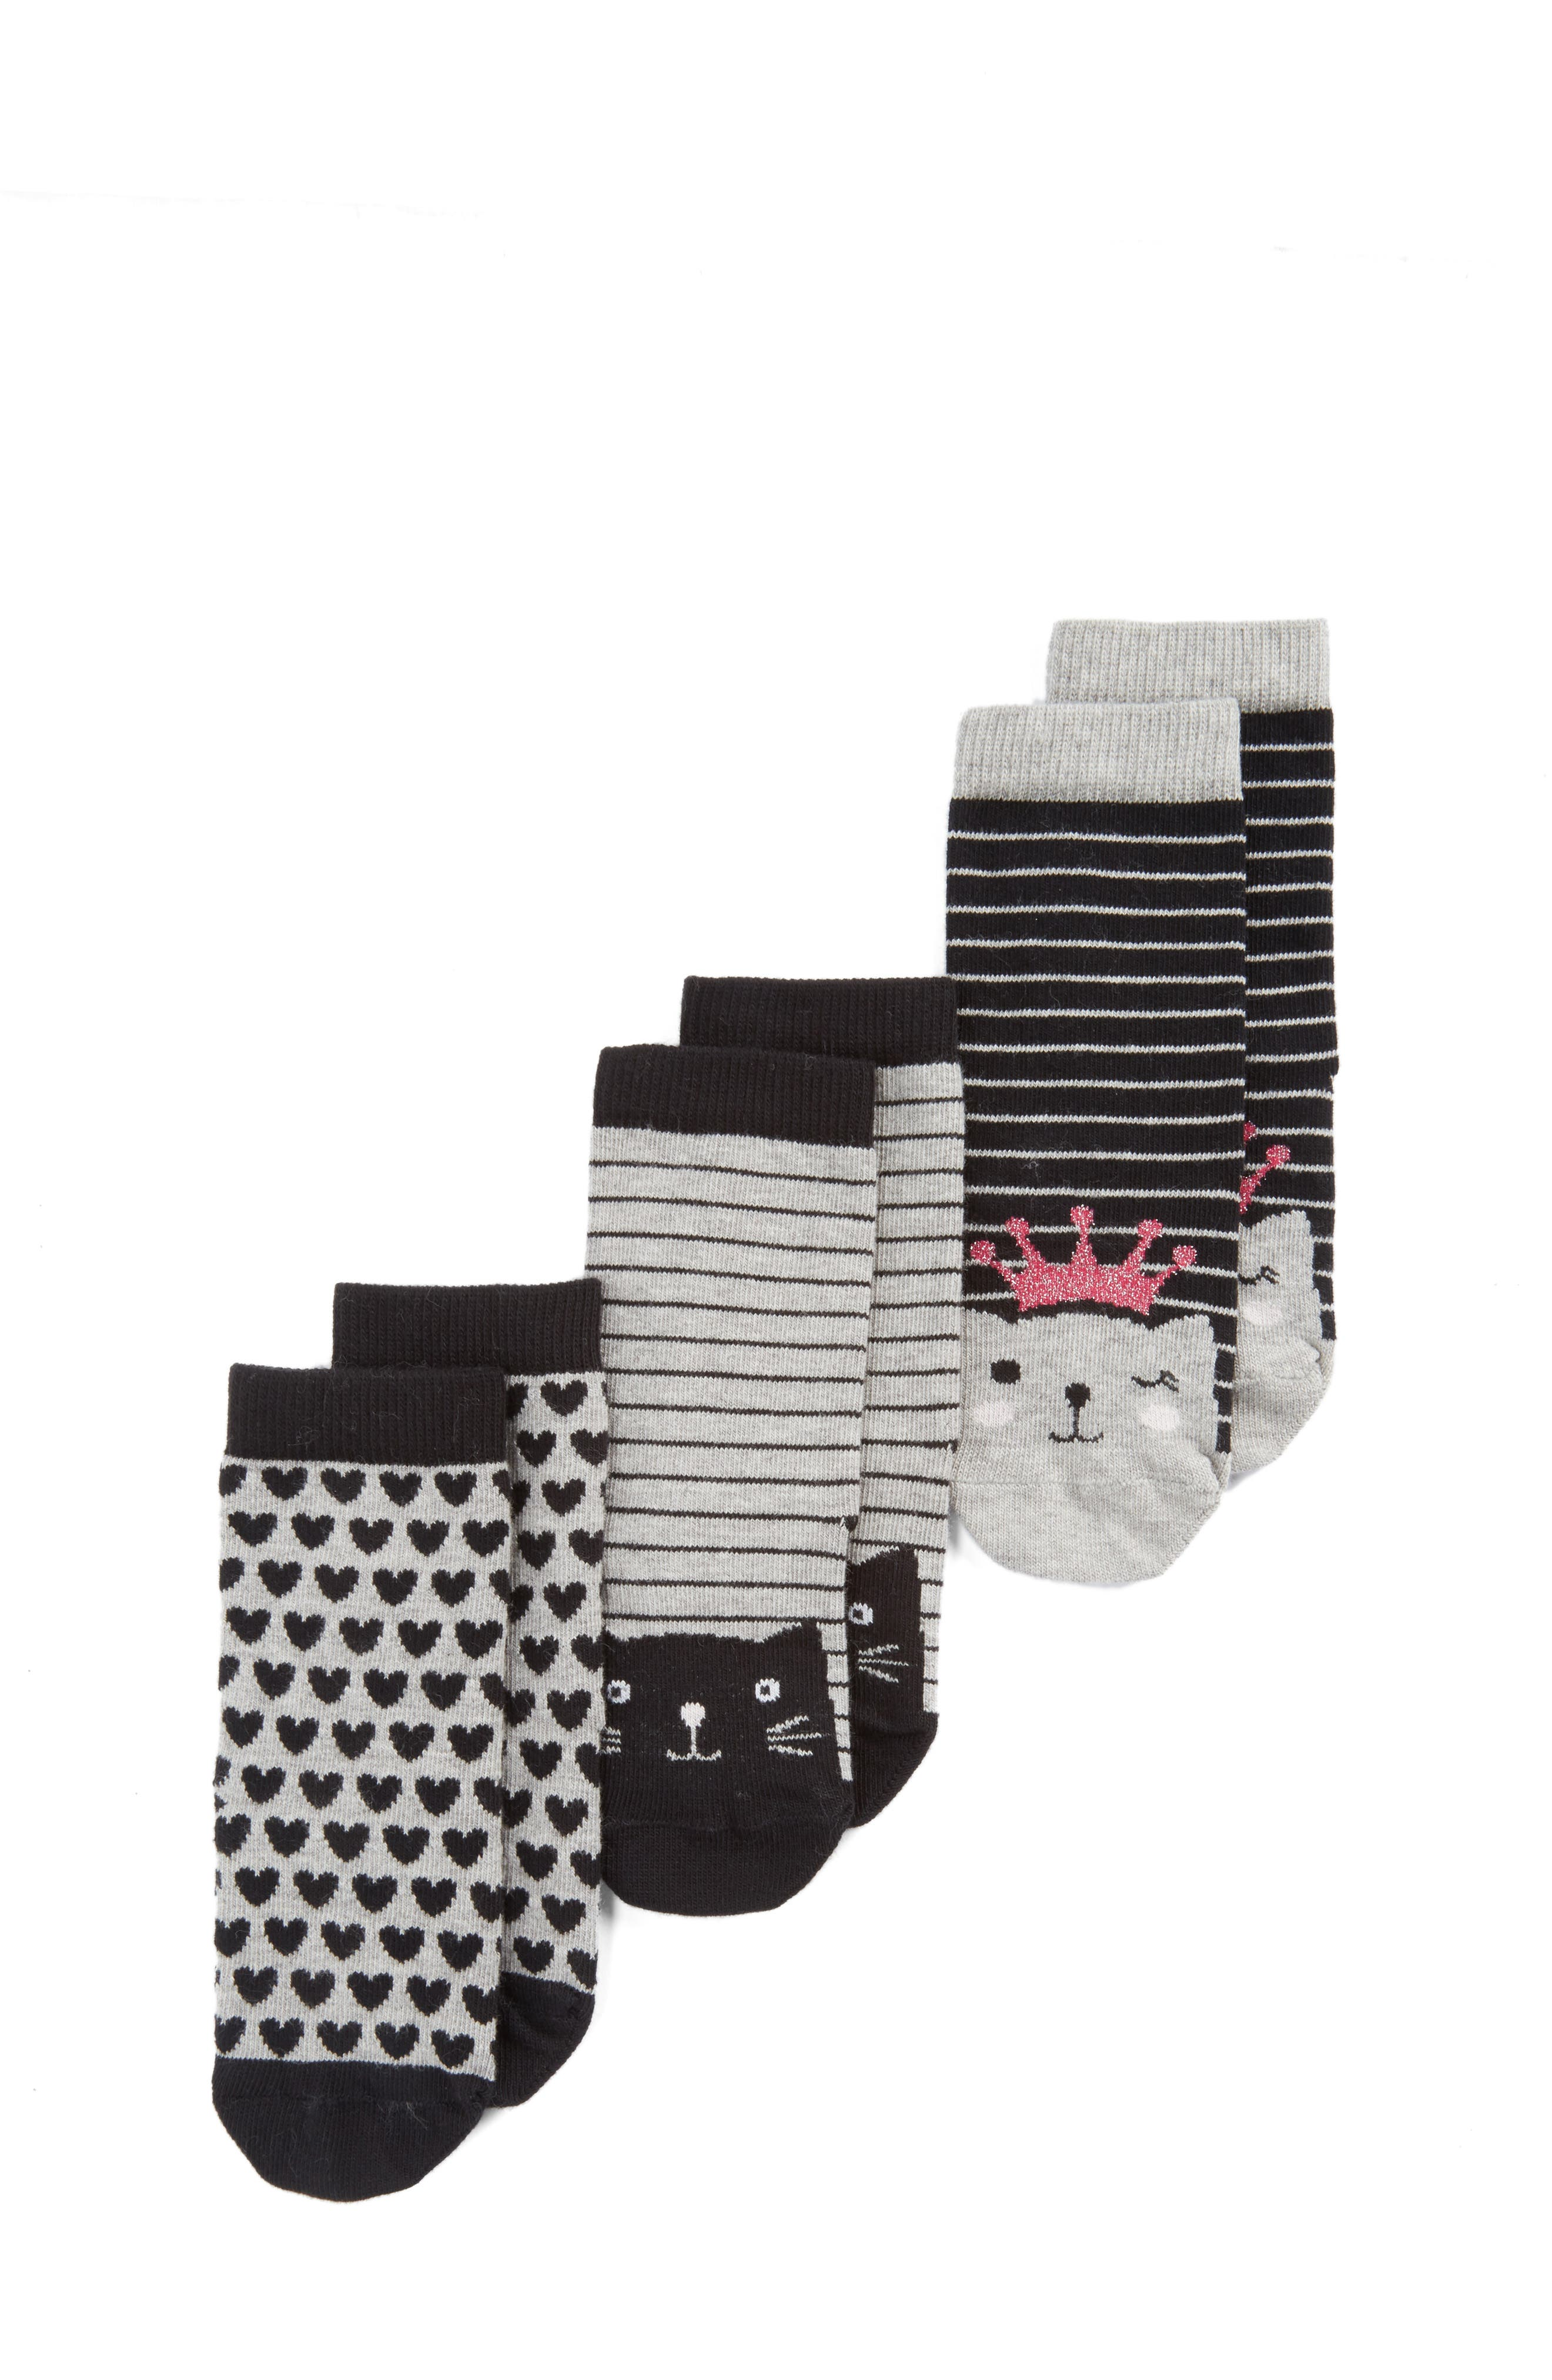 Alternate Image 1 Selected - Tucker + Tate Assorted 3-Pack Kitty Face Socks (Baby, Walker, Toddler, Little Kid & Big Kid)